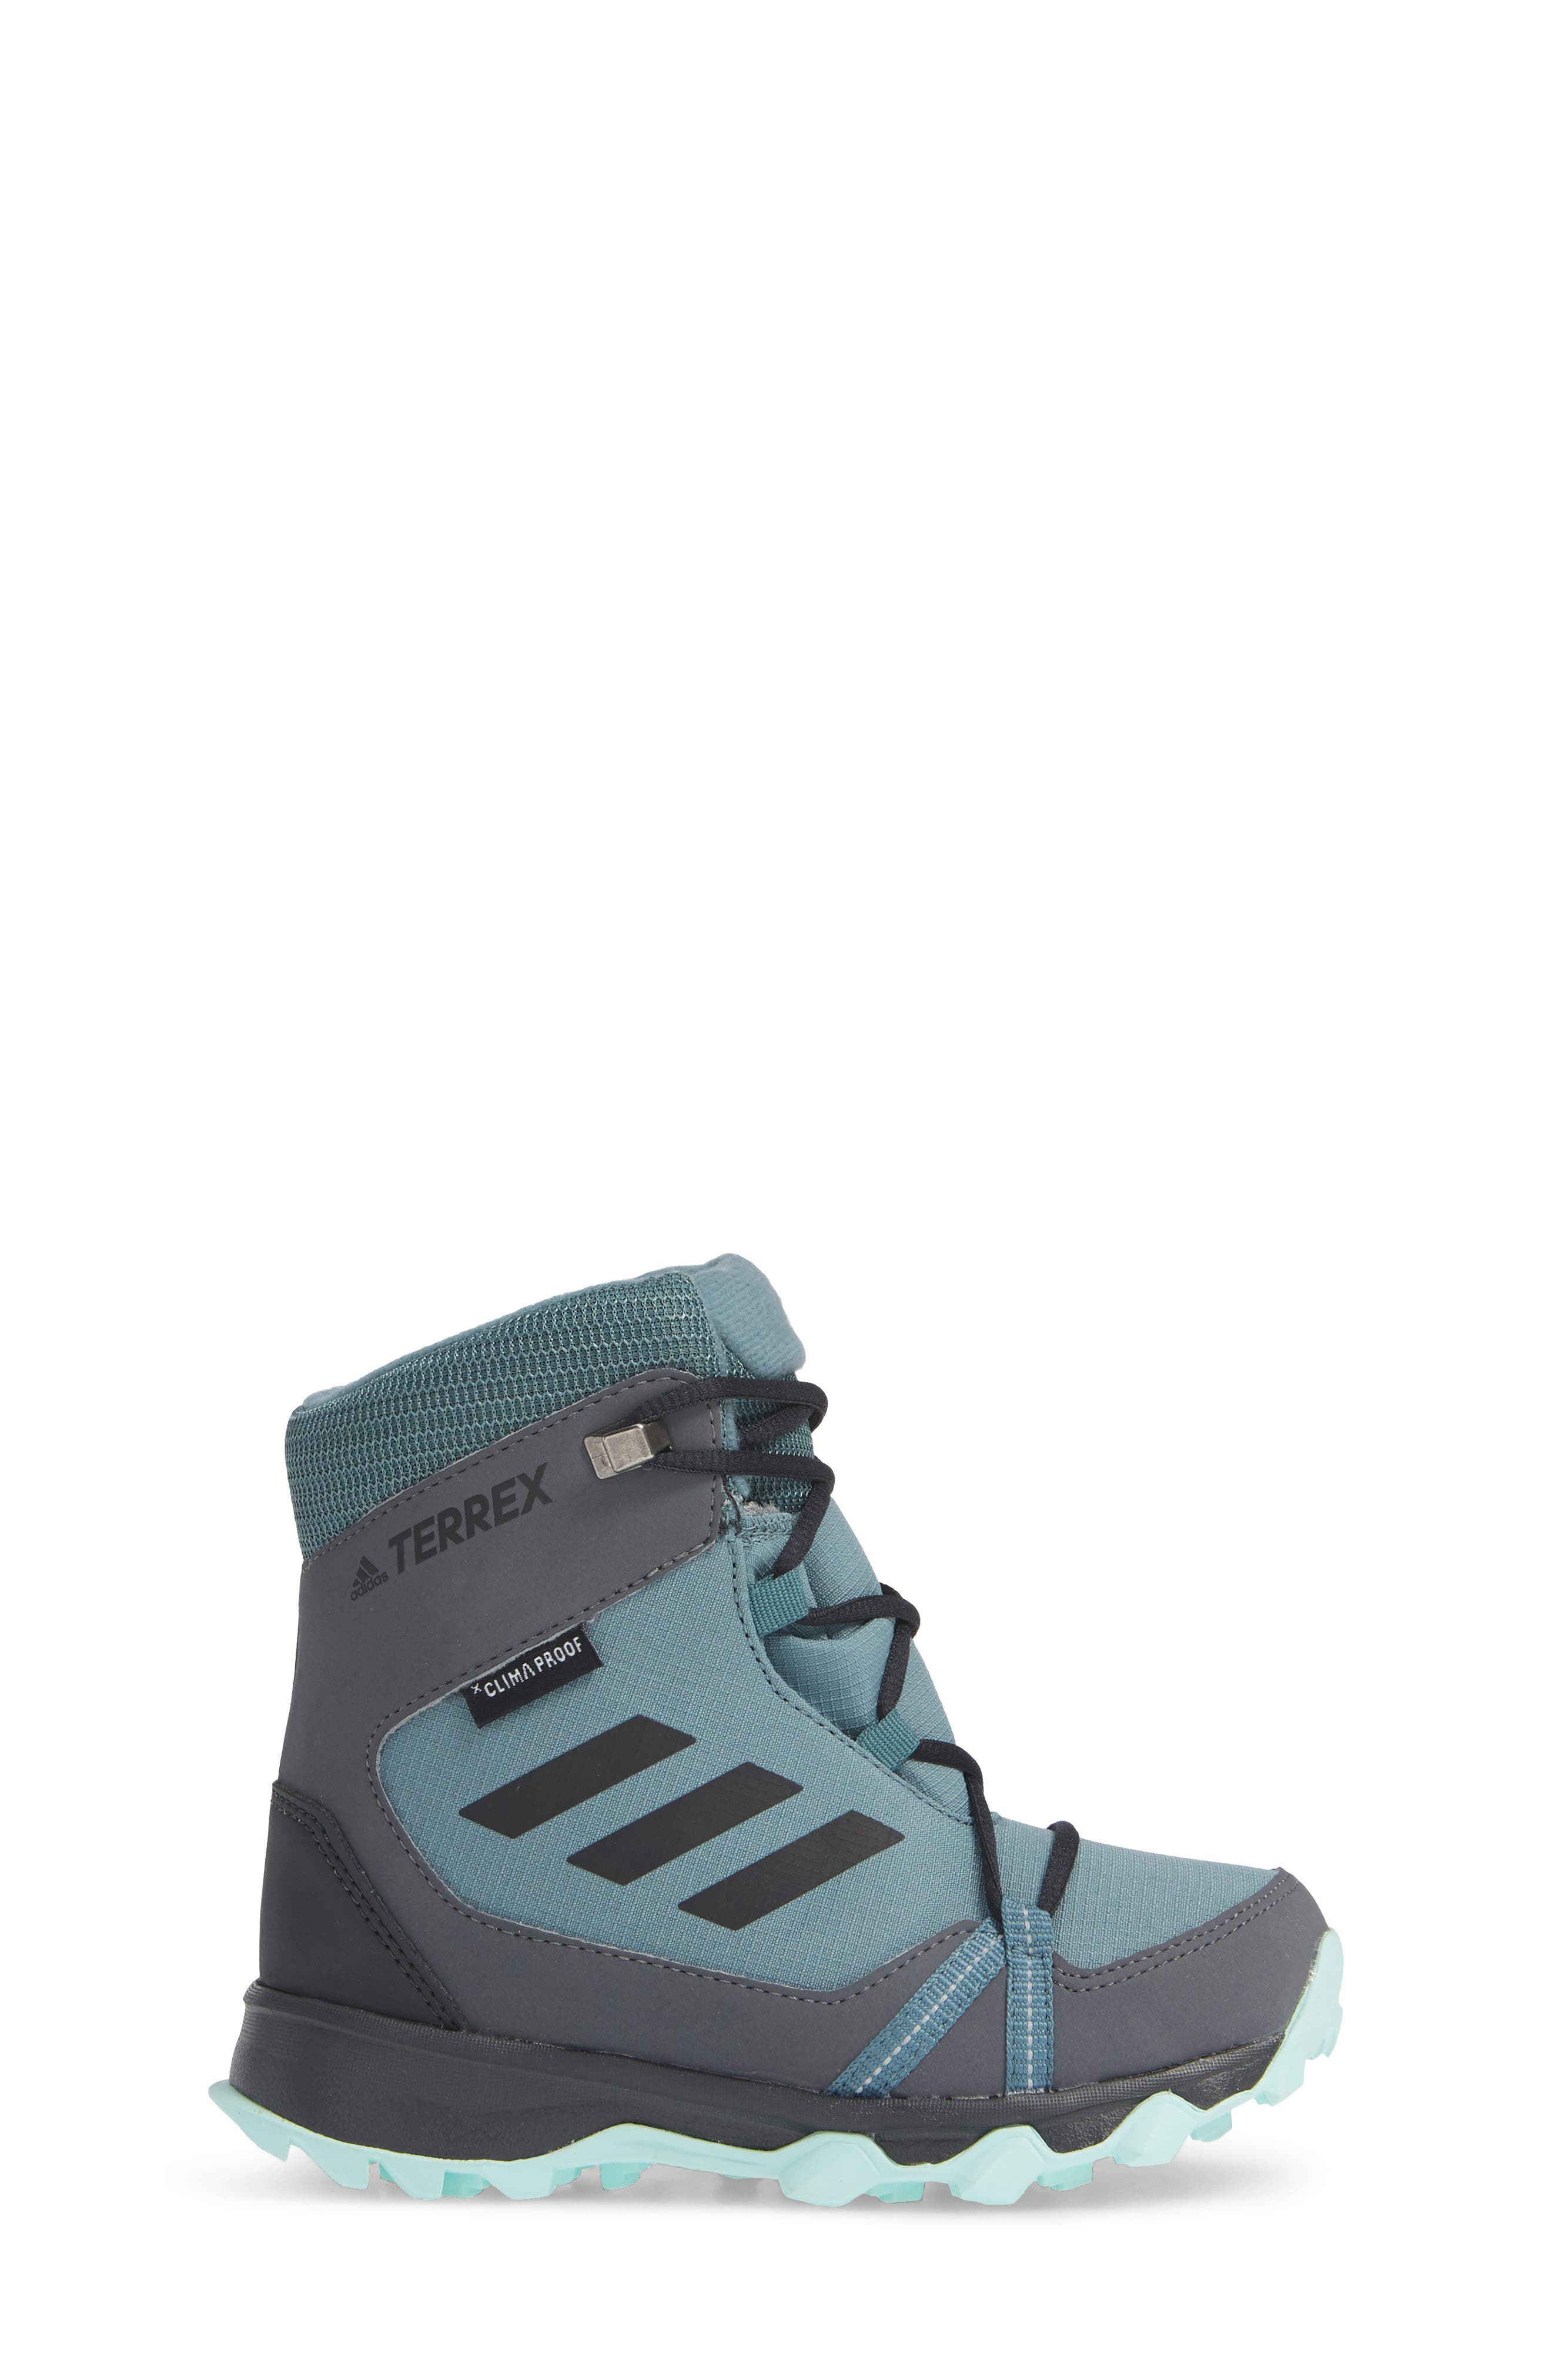 Terrex Snow CP CW Insulated Waterproof Sneaker Boot,                             Alternate thumbnail 3, color,                             CLEAR MINT/ CARBON/ AQUA